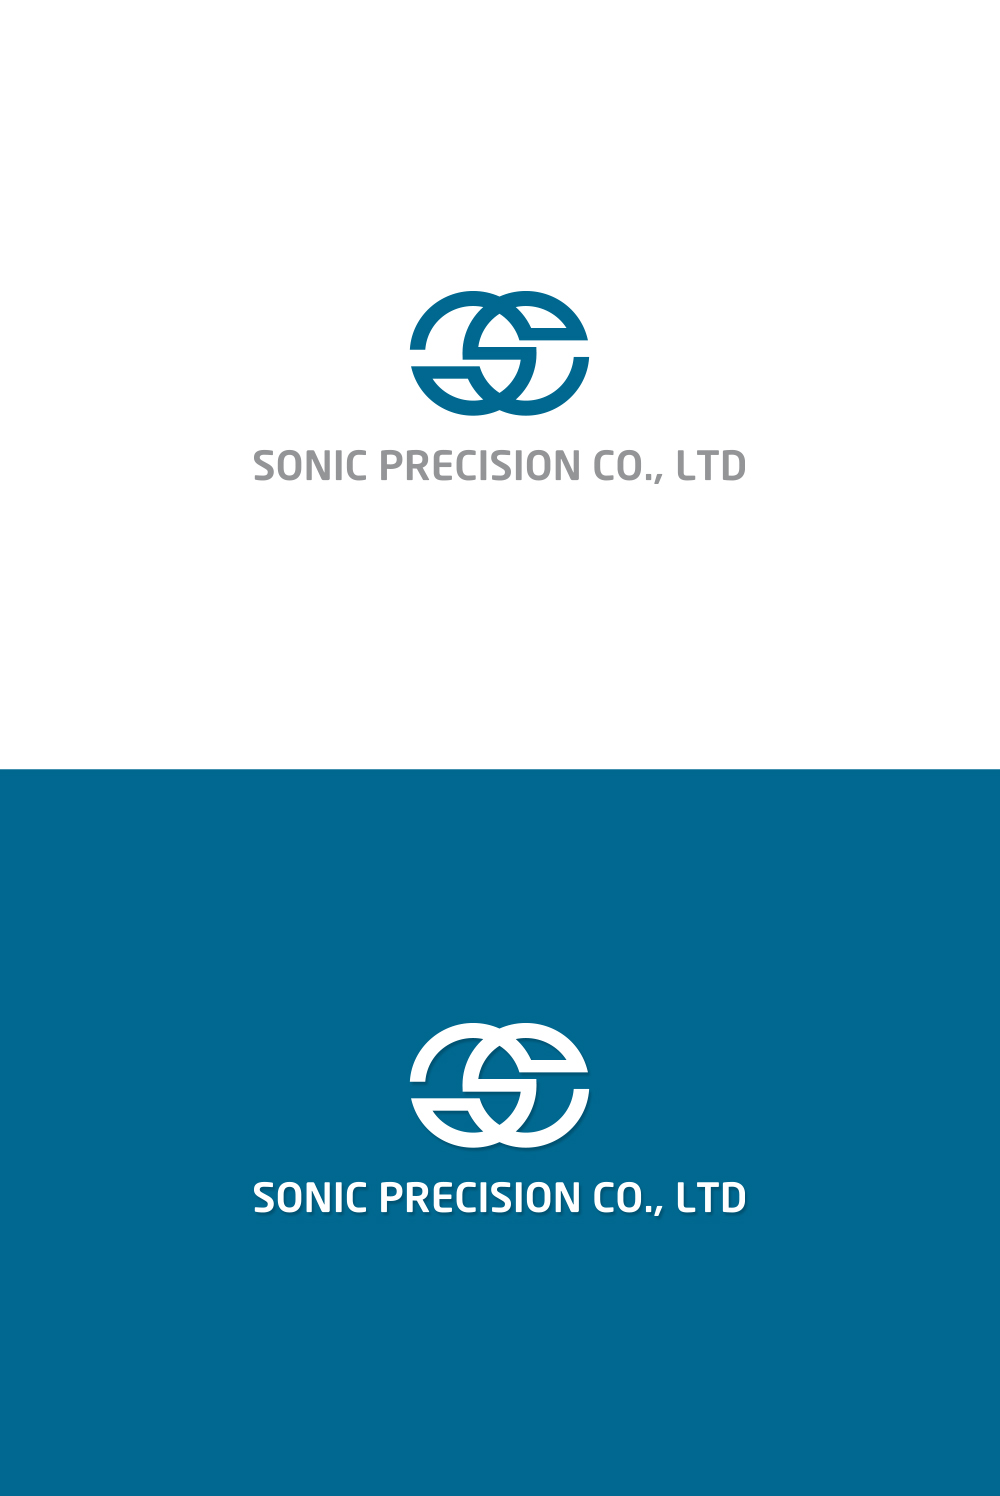 Industrial logo design for sonic precision co ltd by for Industrial design company